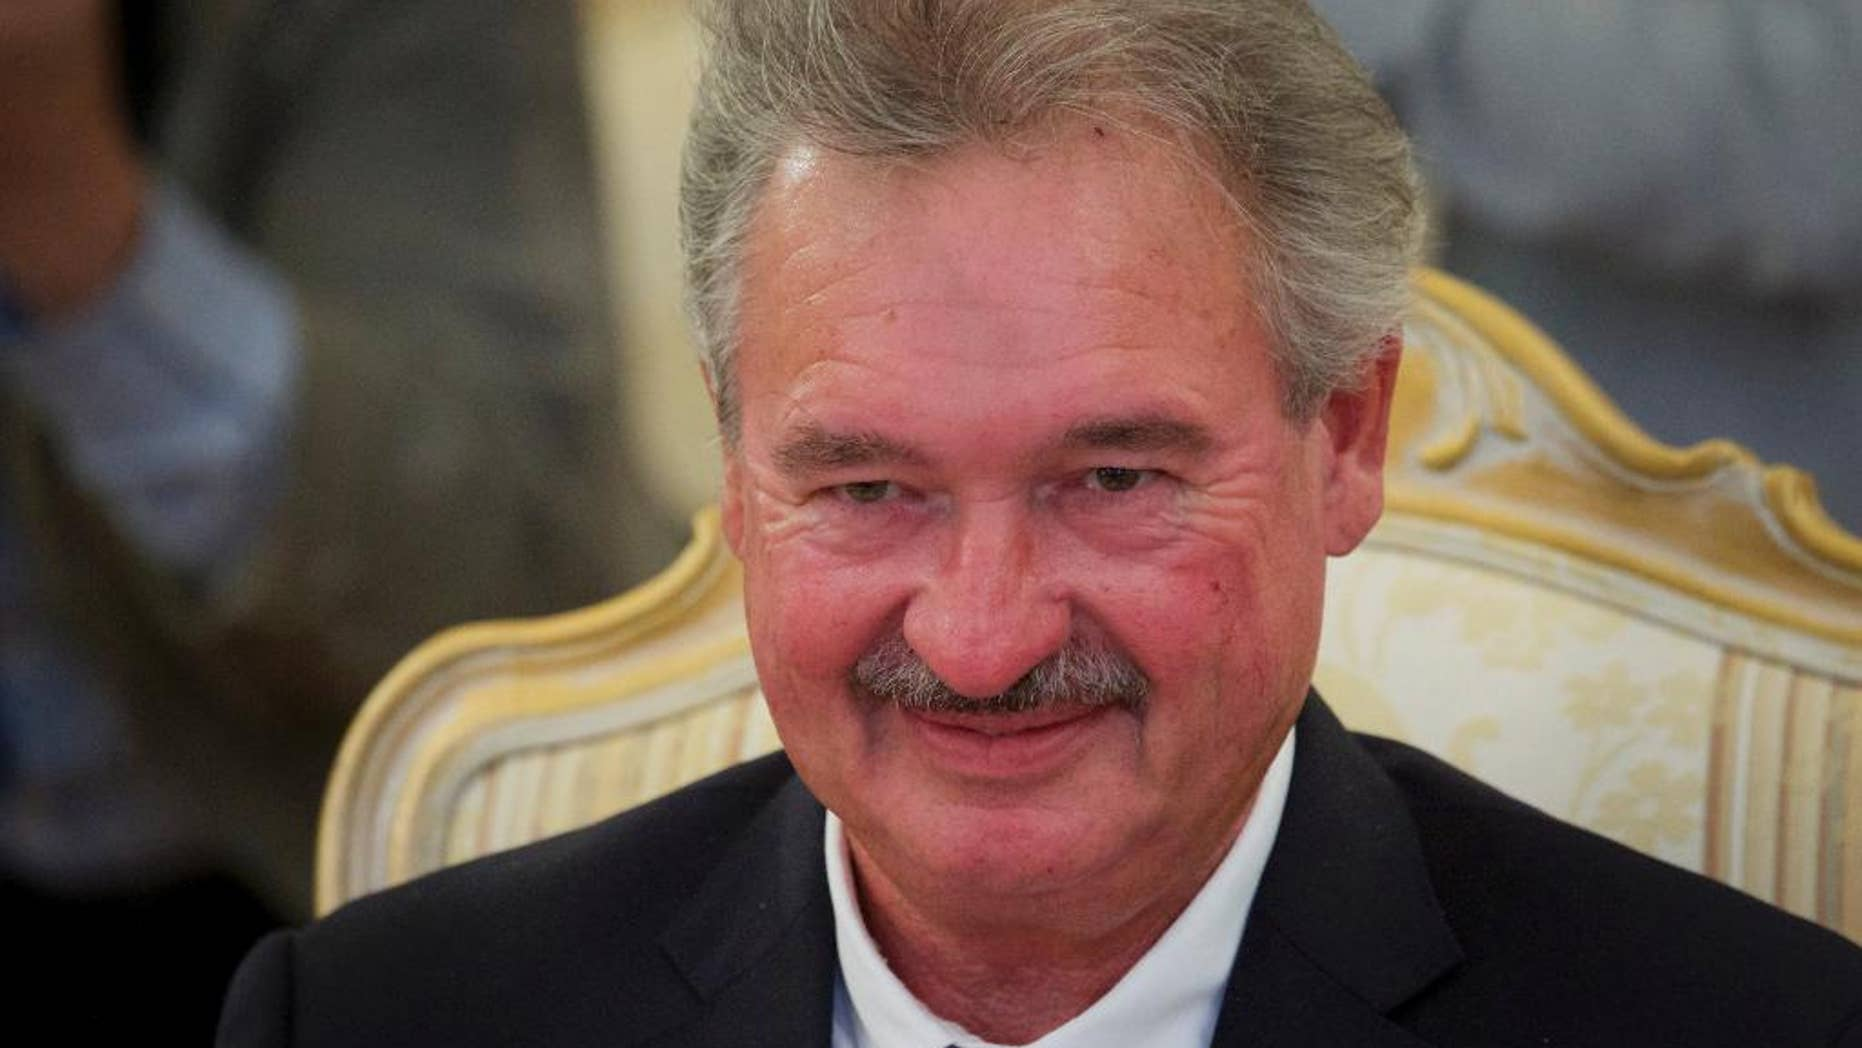 Luxembourg Foreign Minister Jean Asselborn smiles during talks with his Russian counterpart Sergey Lavrov in Moscow, Russia, on Tuesday, Sept. 13, 2016. (AP Photo/Ivan Sekretarev)